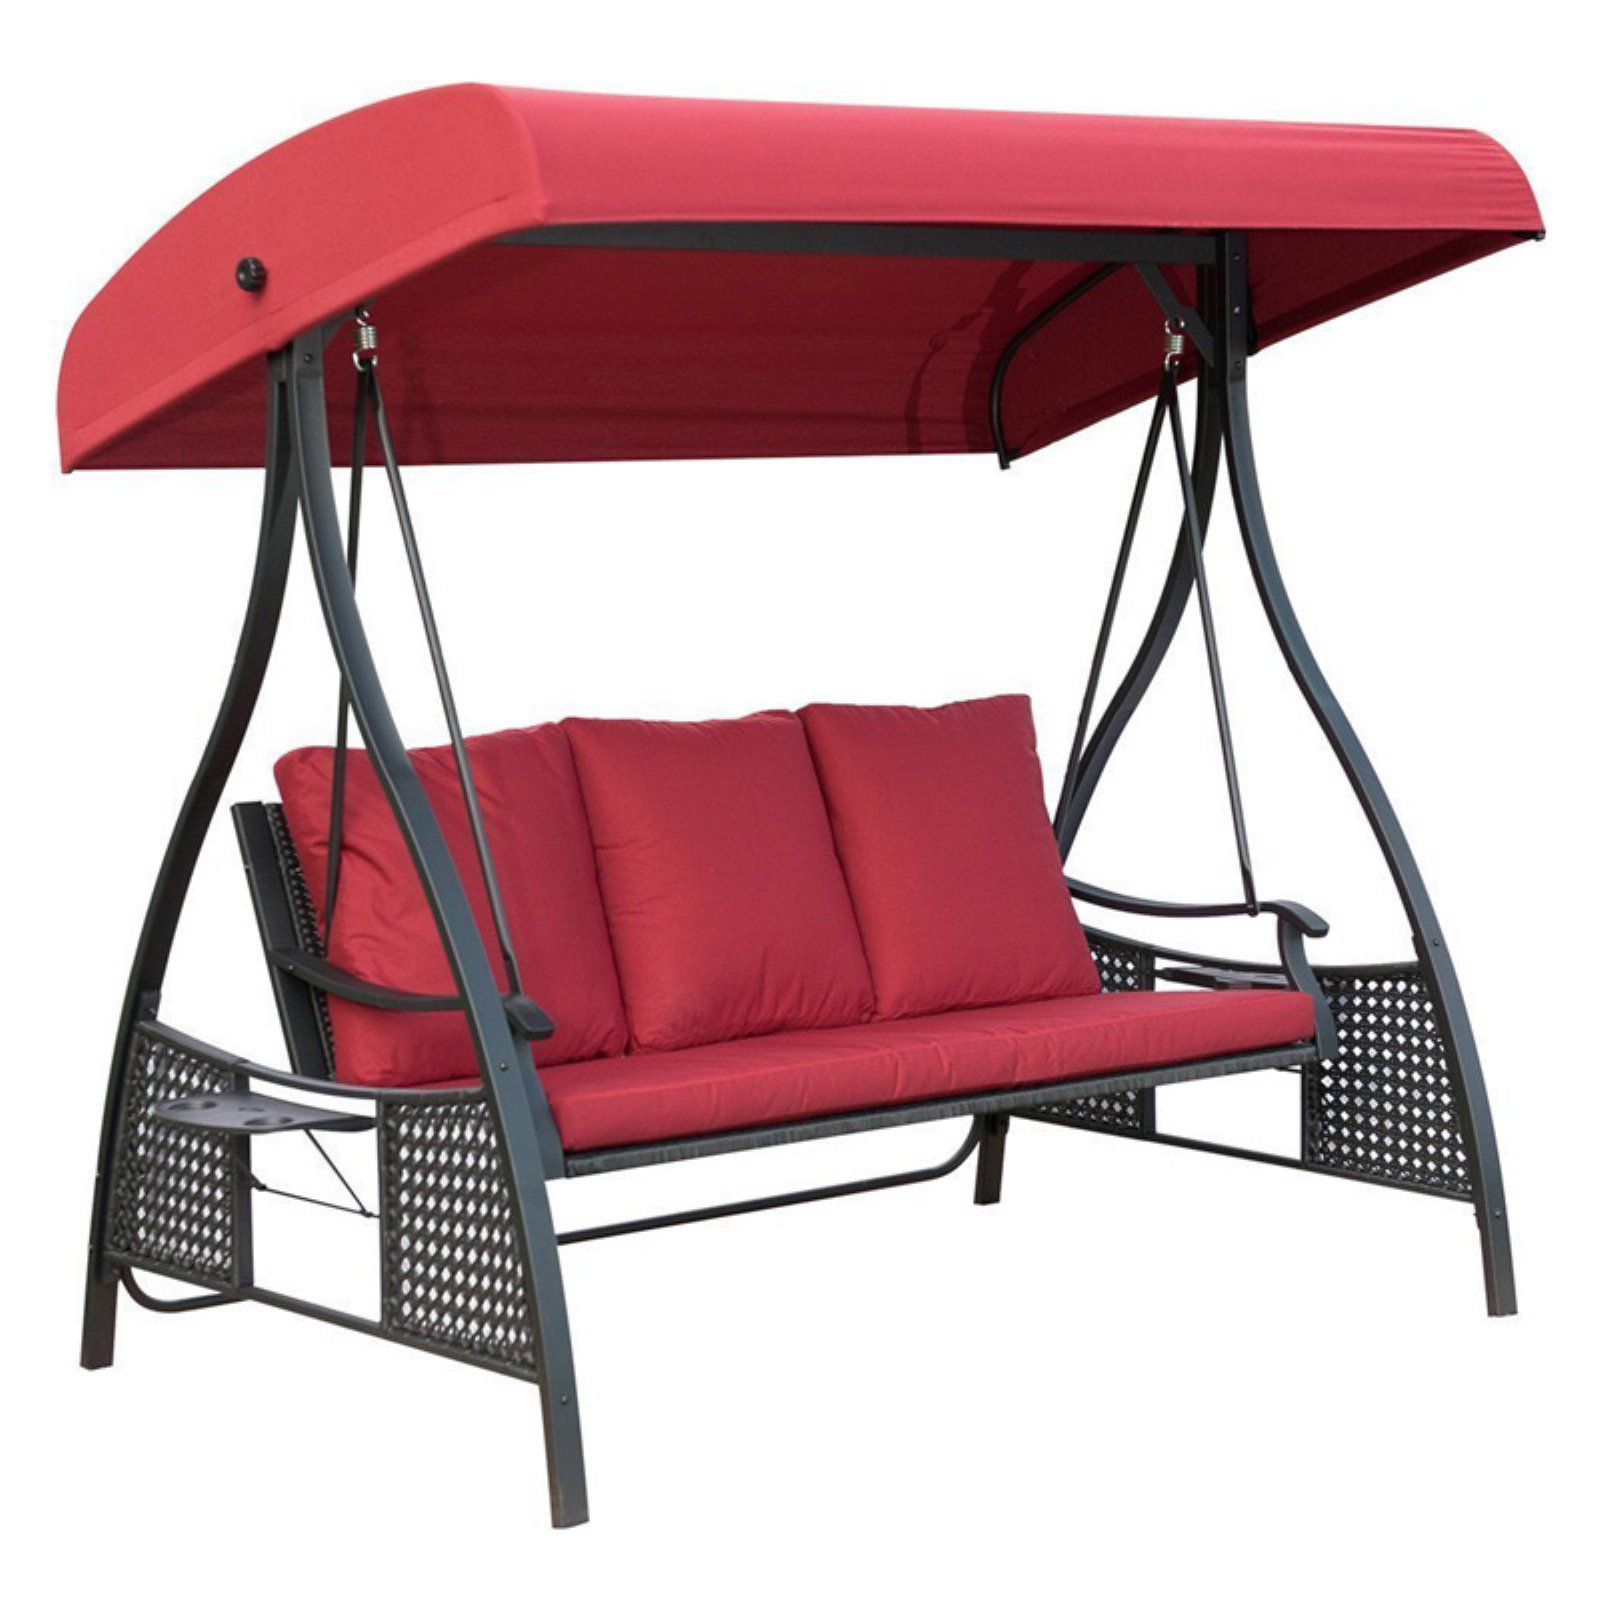 PatioPost 3 Seat Porch Swing with Frame and Canopy  sc 1 st  Pinterest & PatioPost 3 Seat Porch Swing with Frame and Canopy in 2019 ...